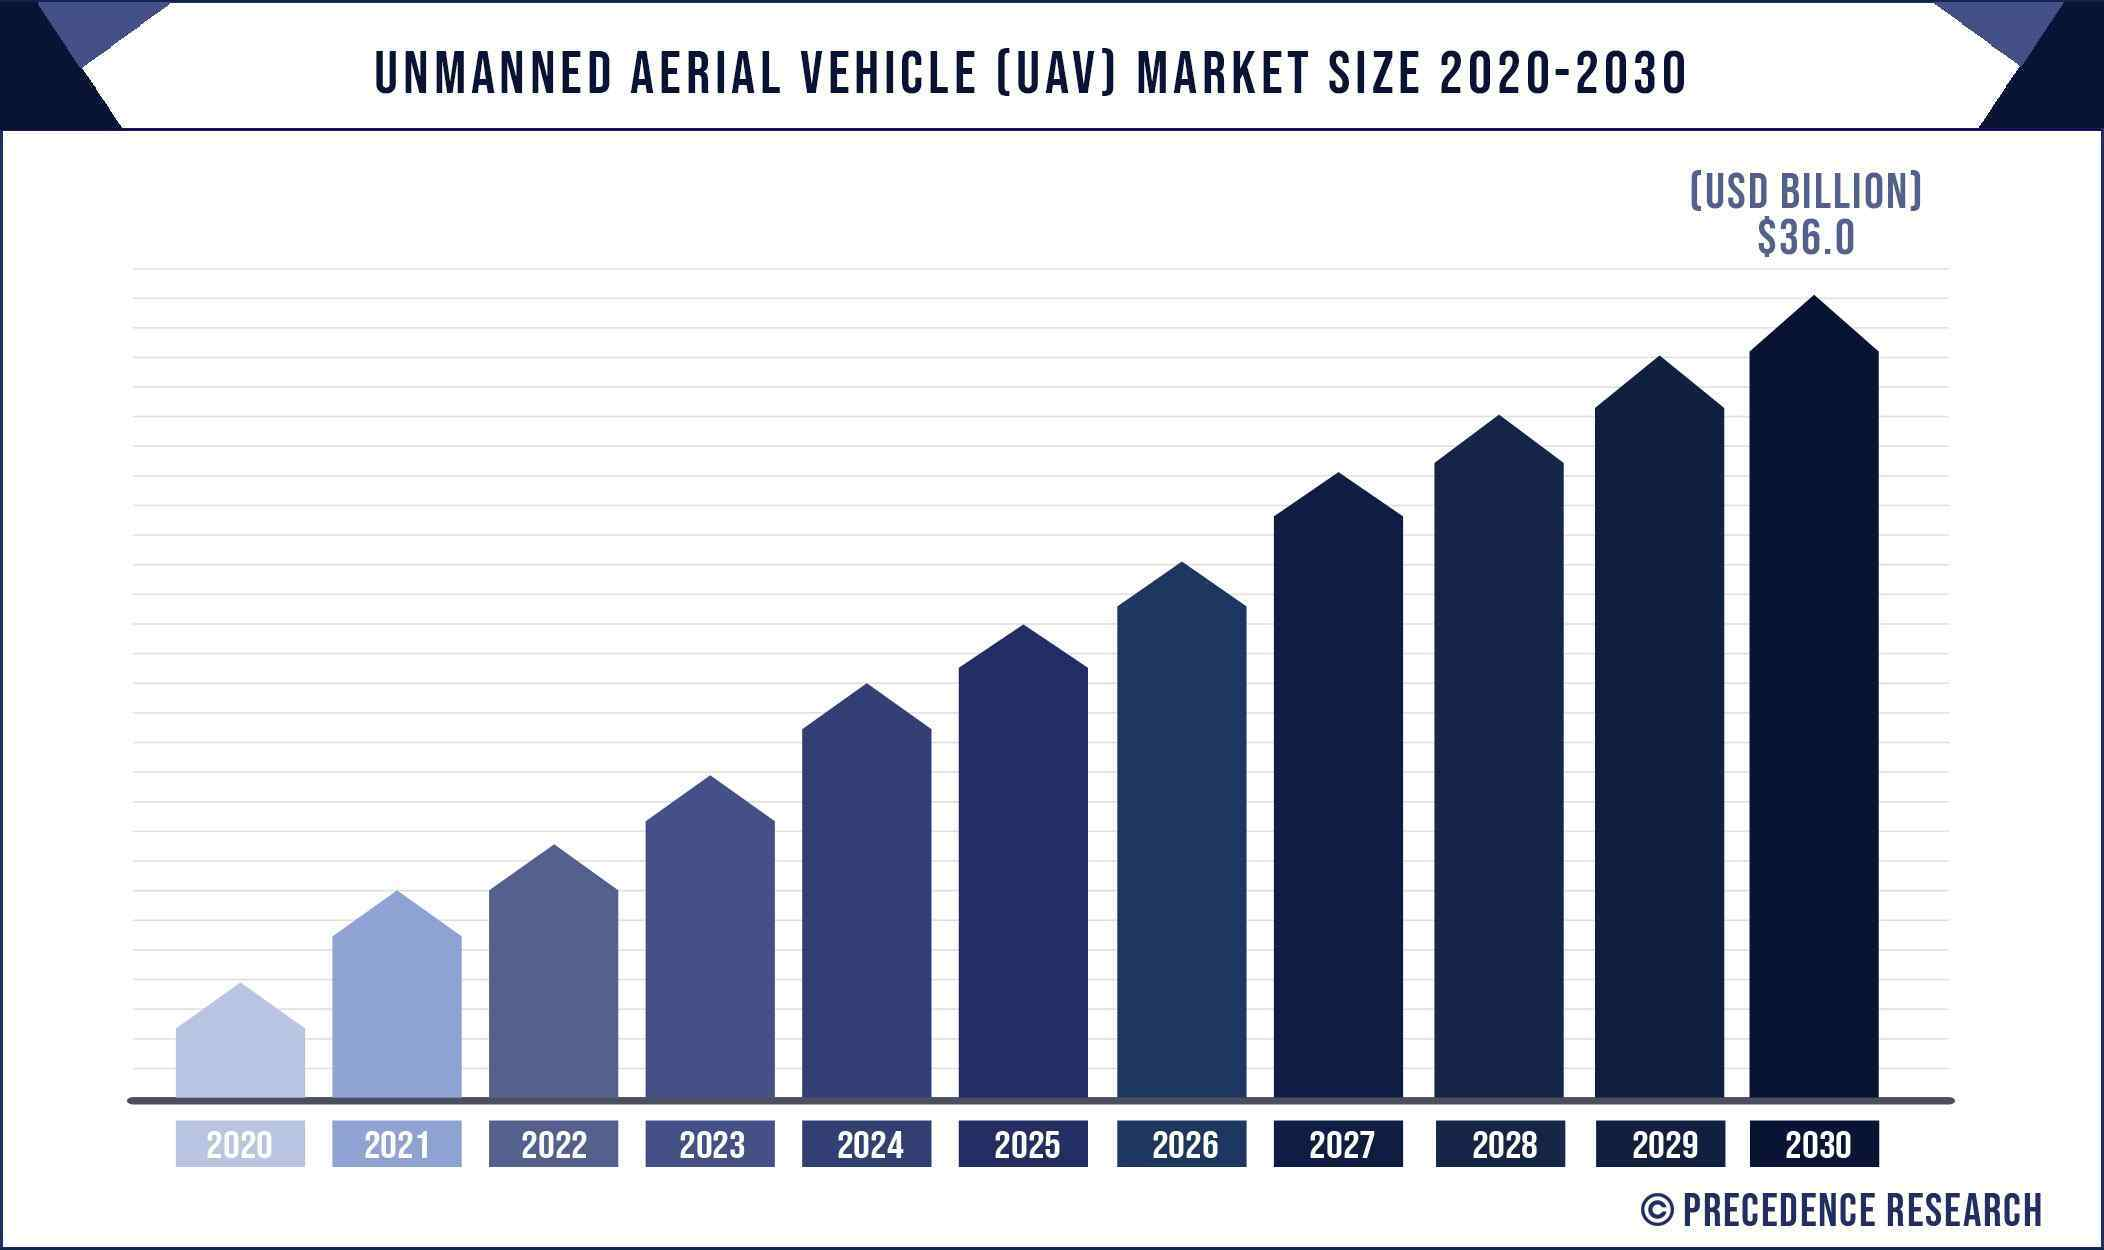 Unmanned Aerial Vehicle (UAV) Market Size 2020 to 2030